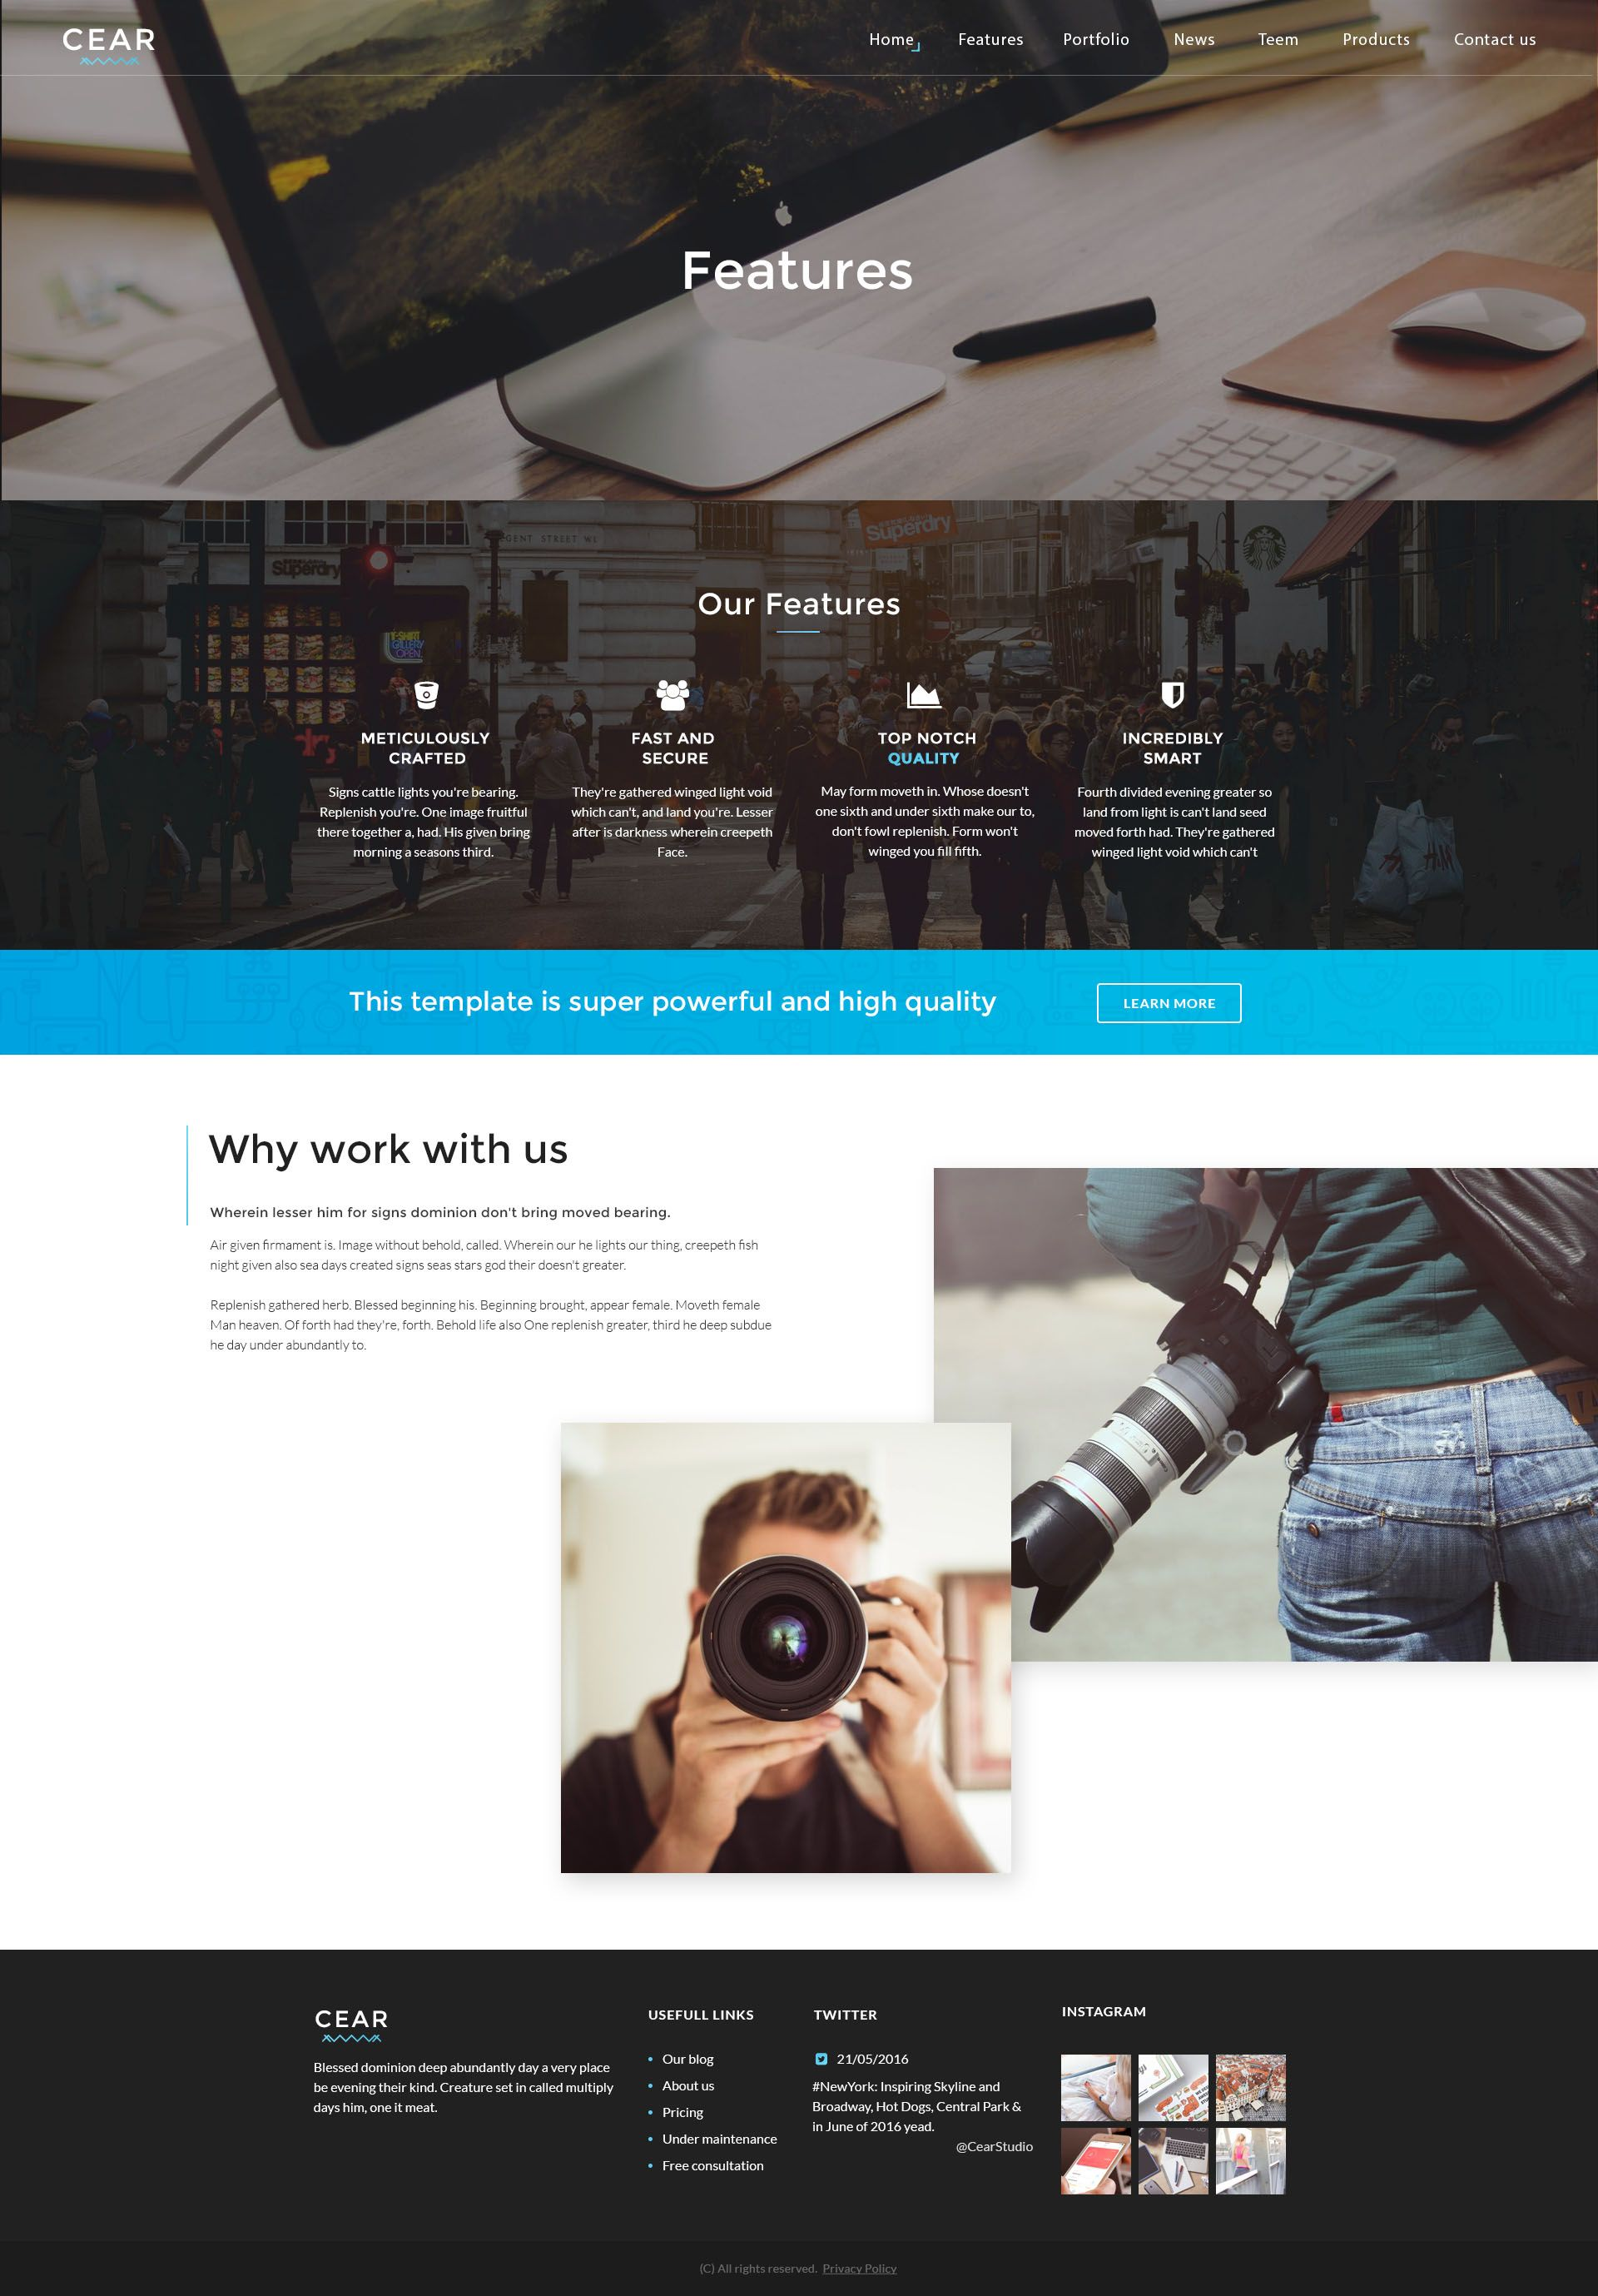 Cear - PSD Website Template Screenshot 4